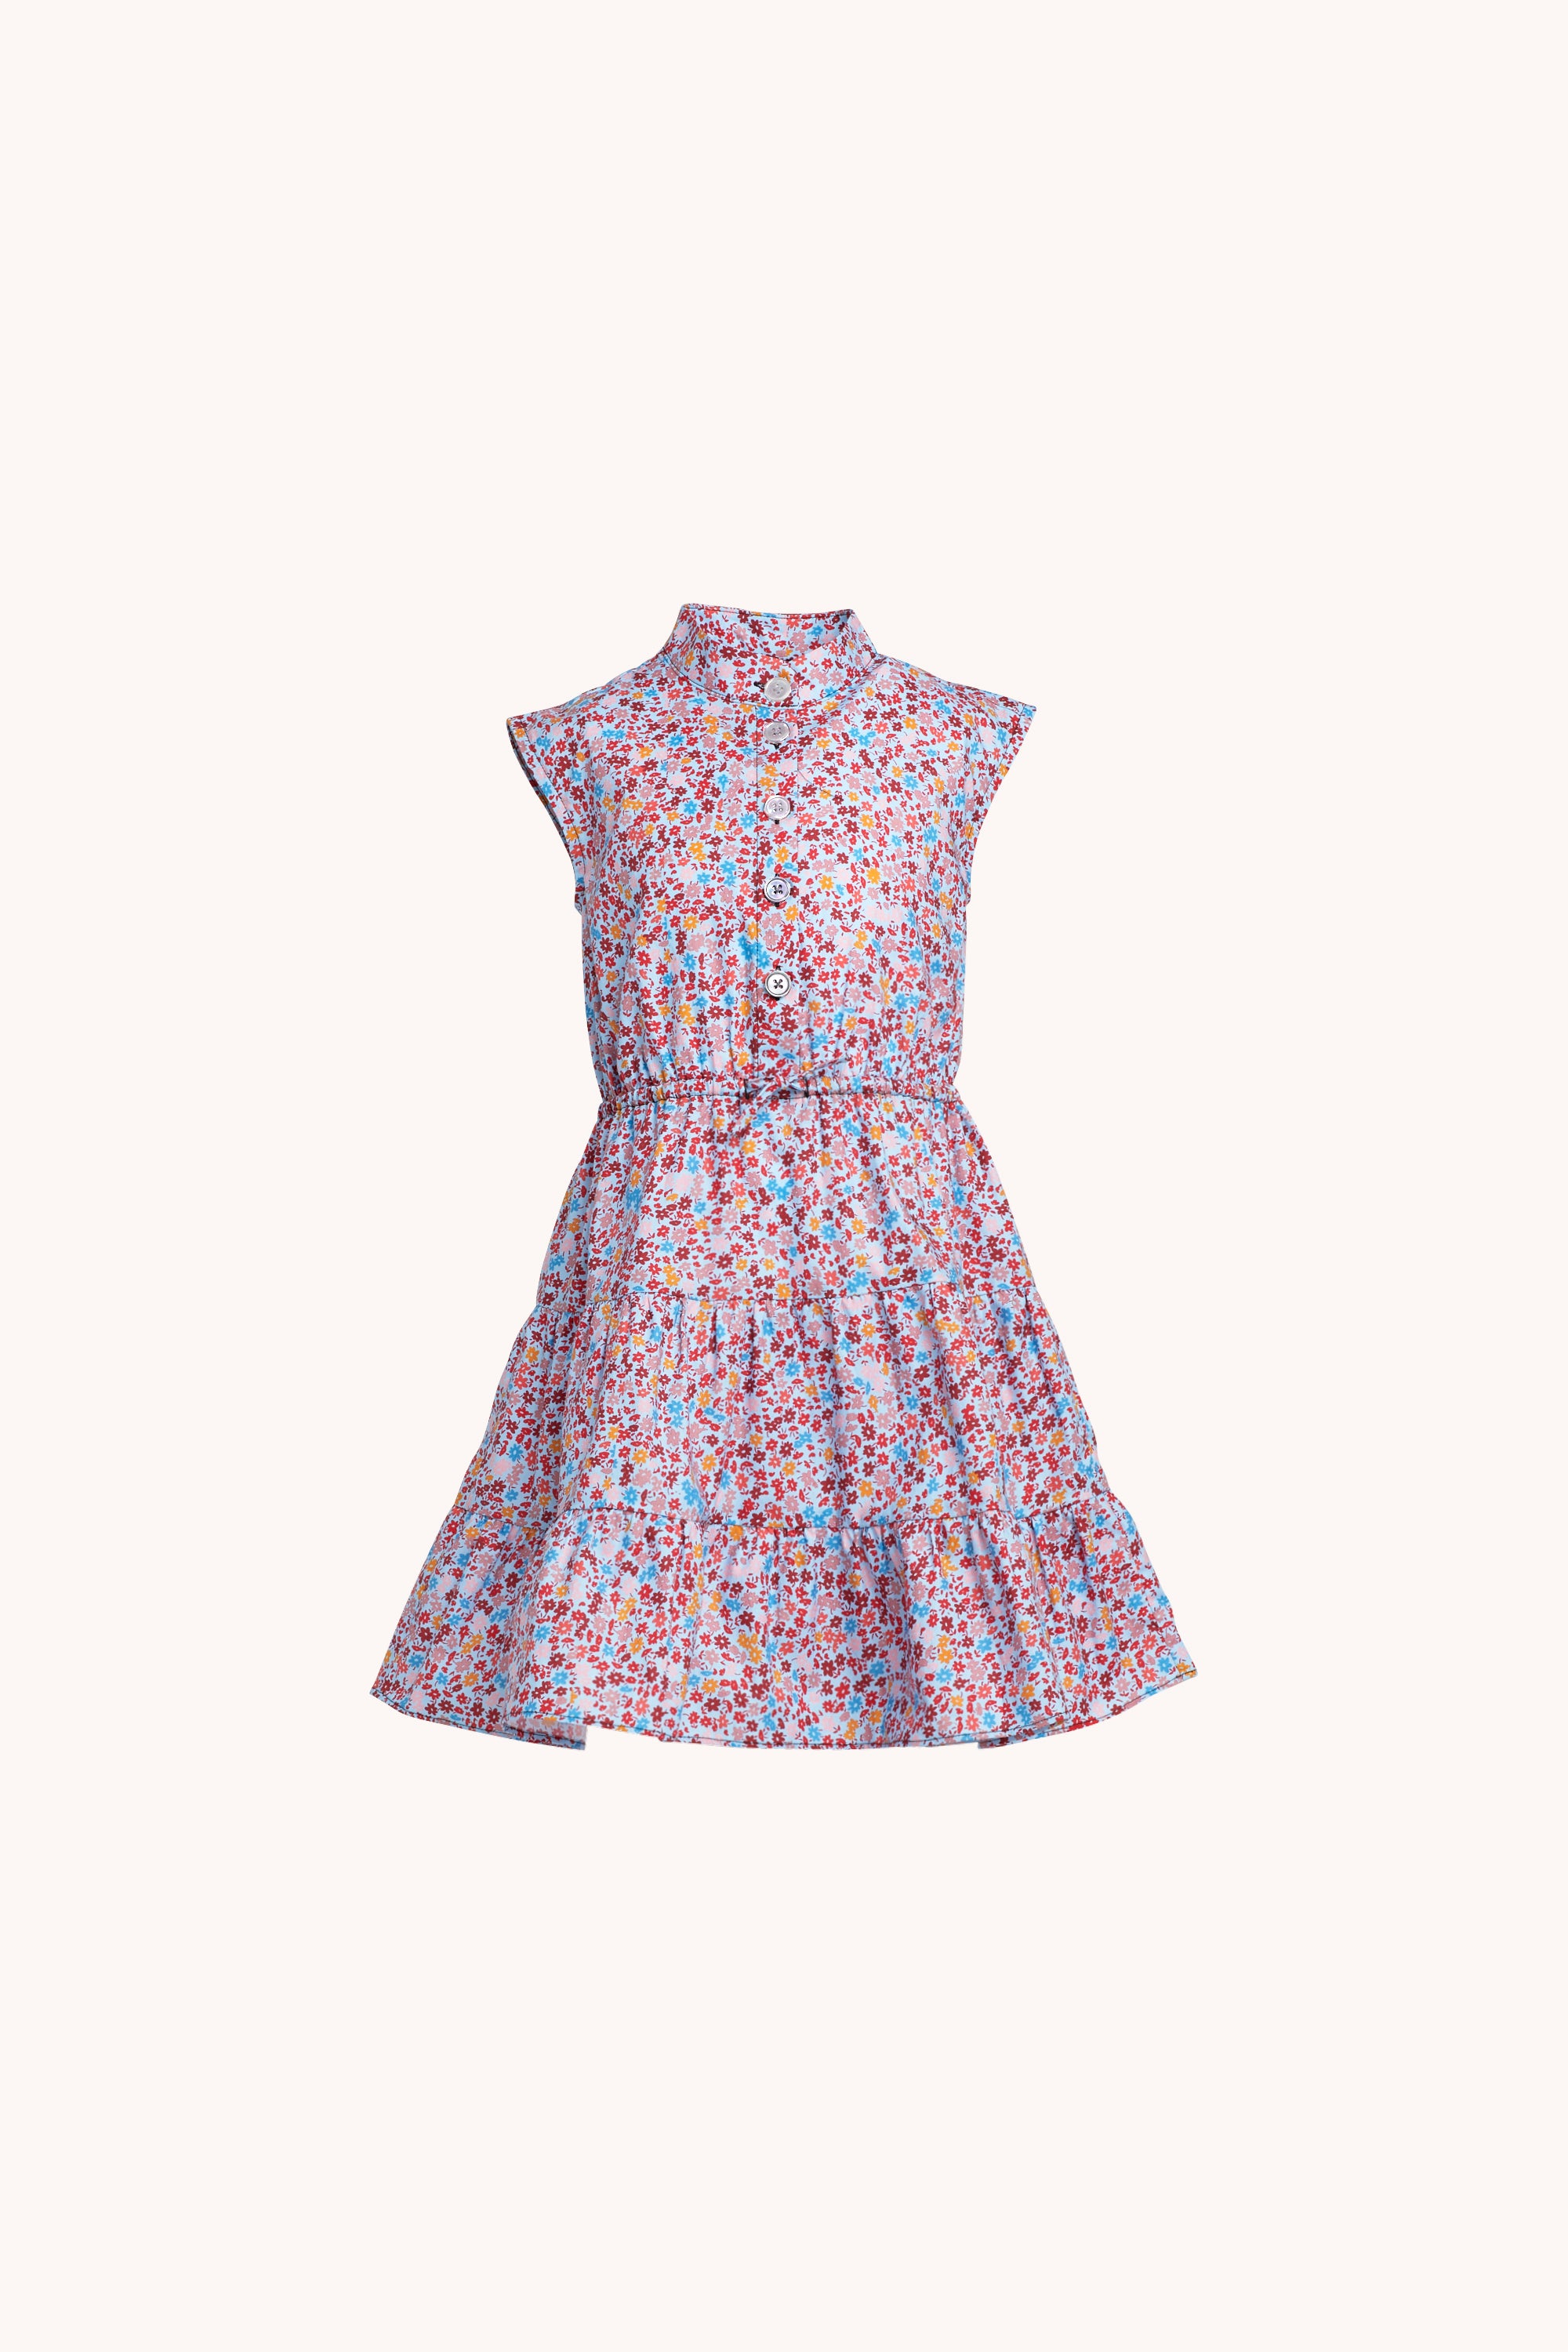 Ollie Dress | Ditsy Floral Baby Blue